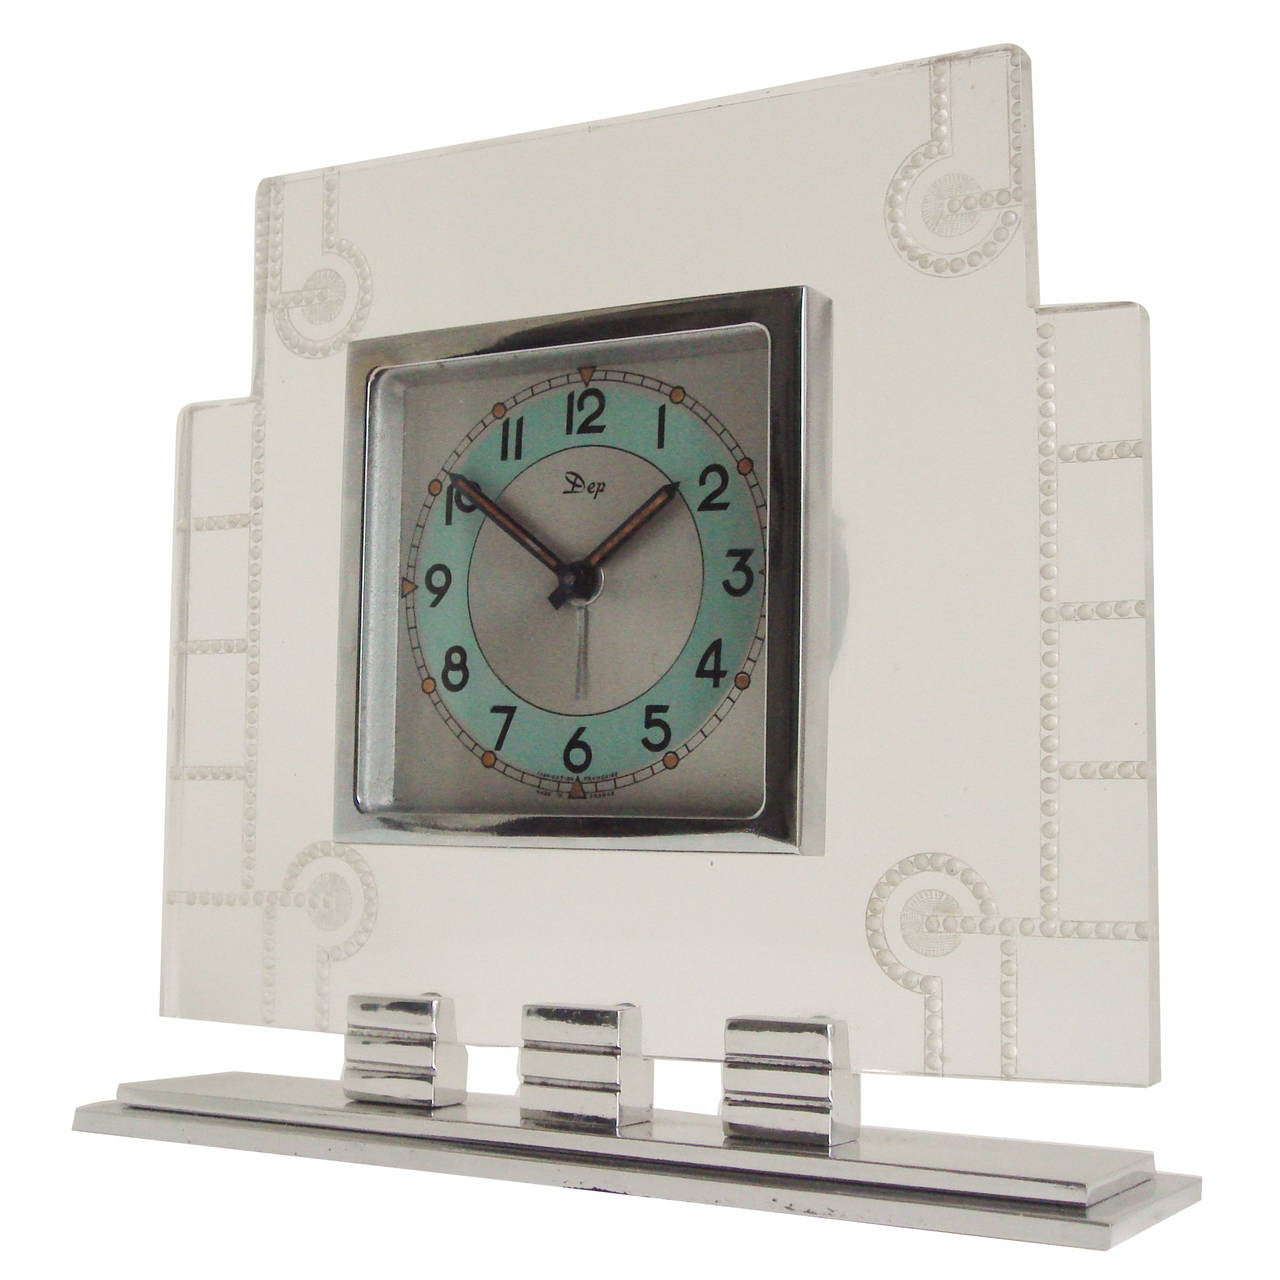 French art deco chrome aluminium and lucite mechanical Art deco alarm clocks